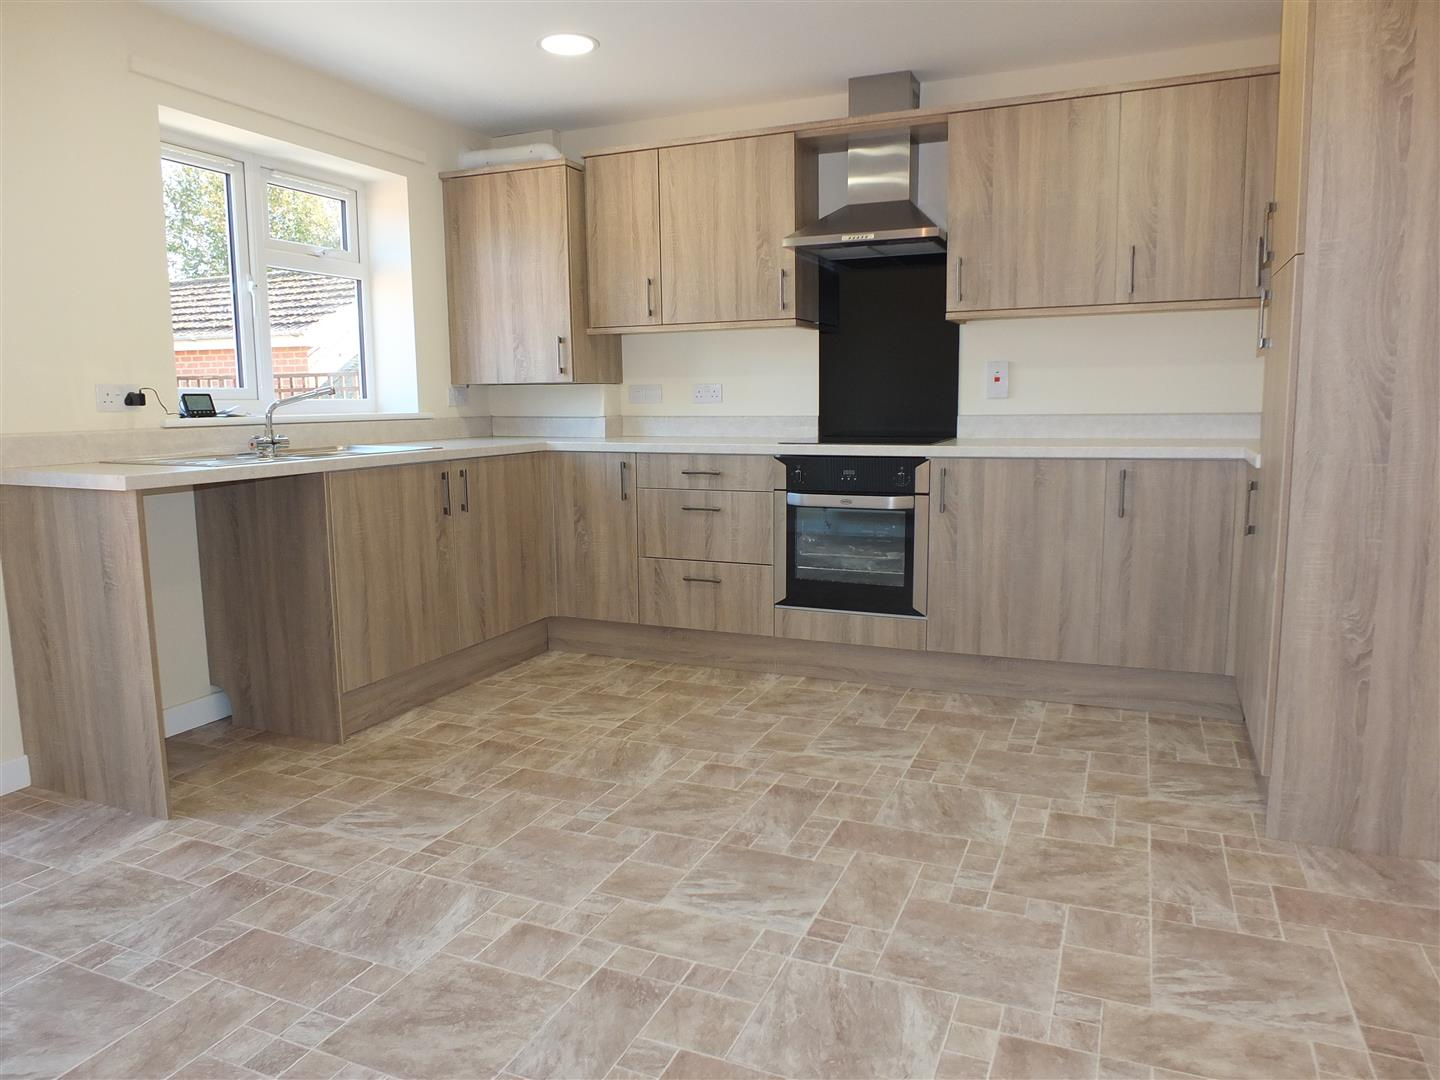 2 bed house to rent in Little London, Long Sutton Spalding  - Property Image 2